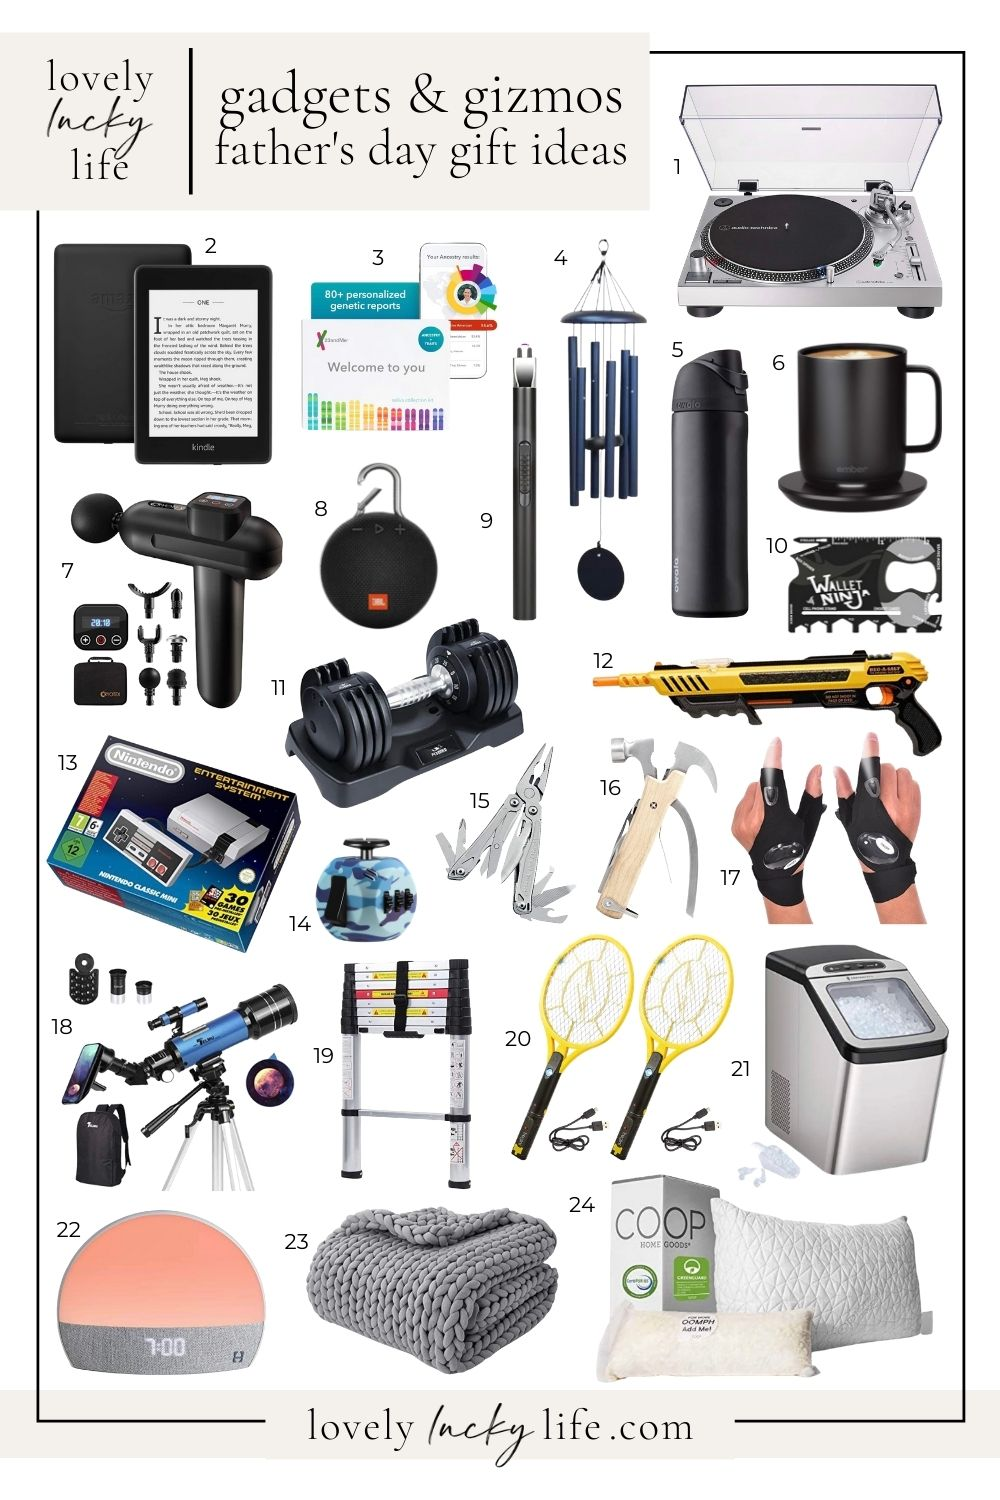 Gadgets & Gizmos Gift Ideas for Father's Day on LovelyLuckyLife.com